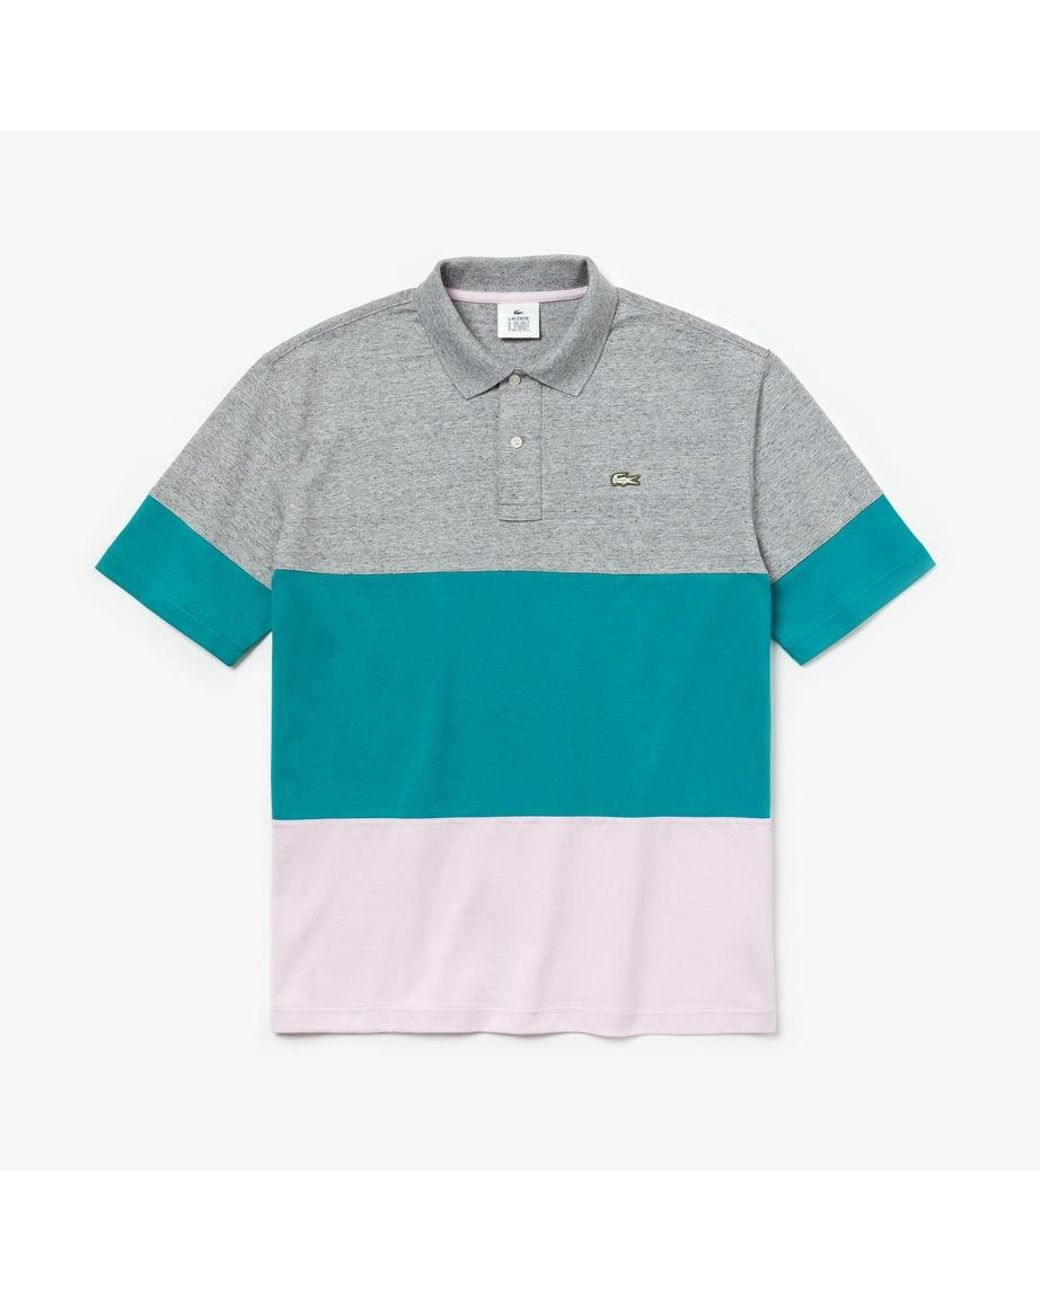 07a61a7718 Lacoste Live Men's Polo Shirt Loose Fit In Cotton Color Block in ...